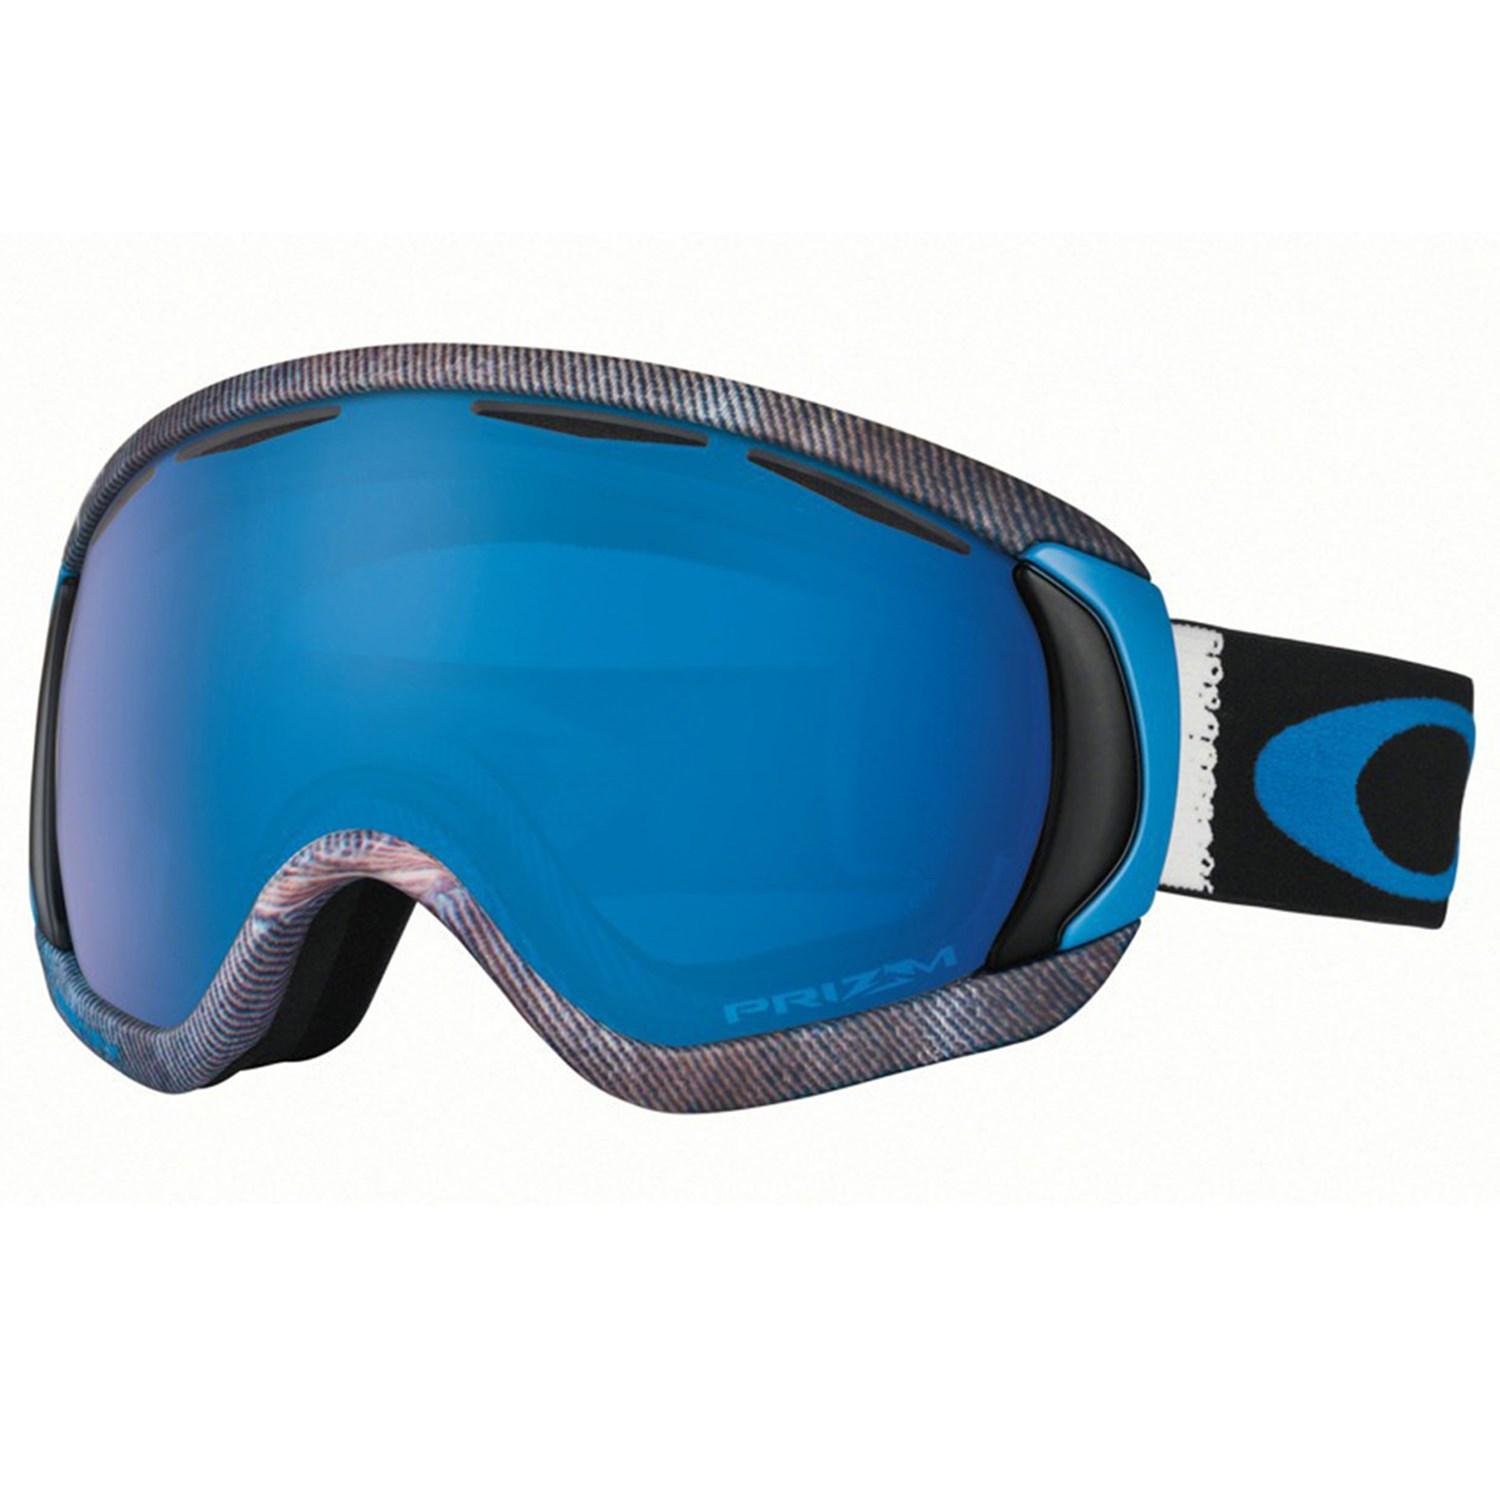 b9f8554f061 Mens Oakley Ski Goggles Sale marketing-yourself.co.uk